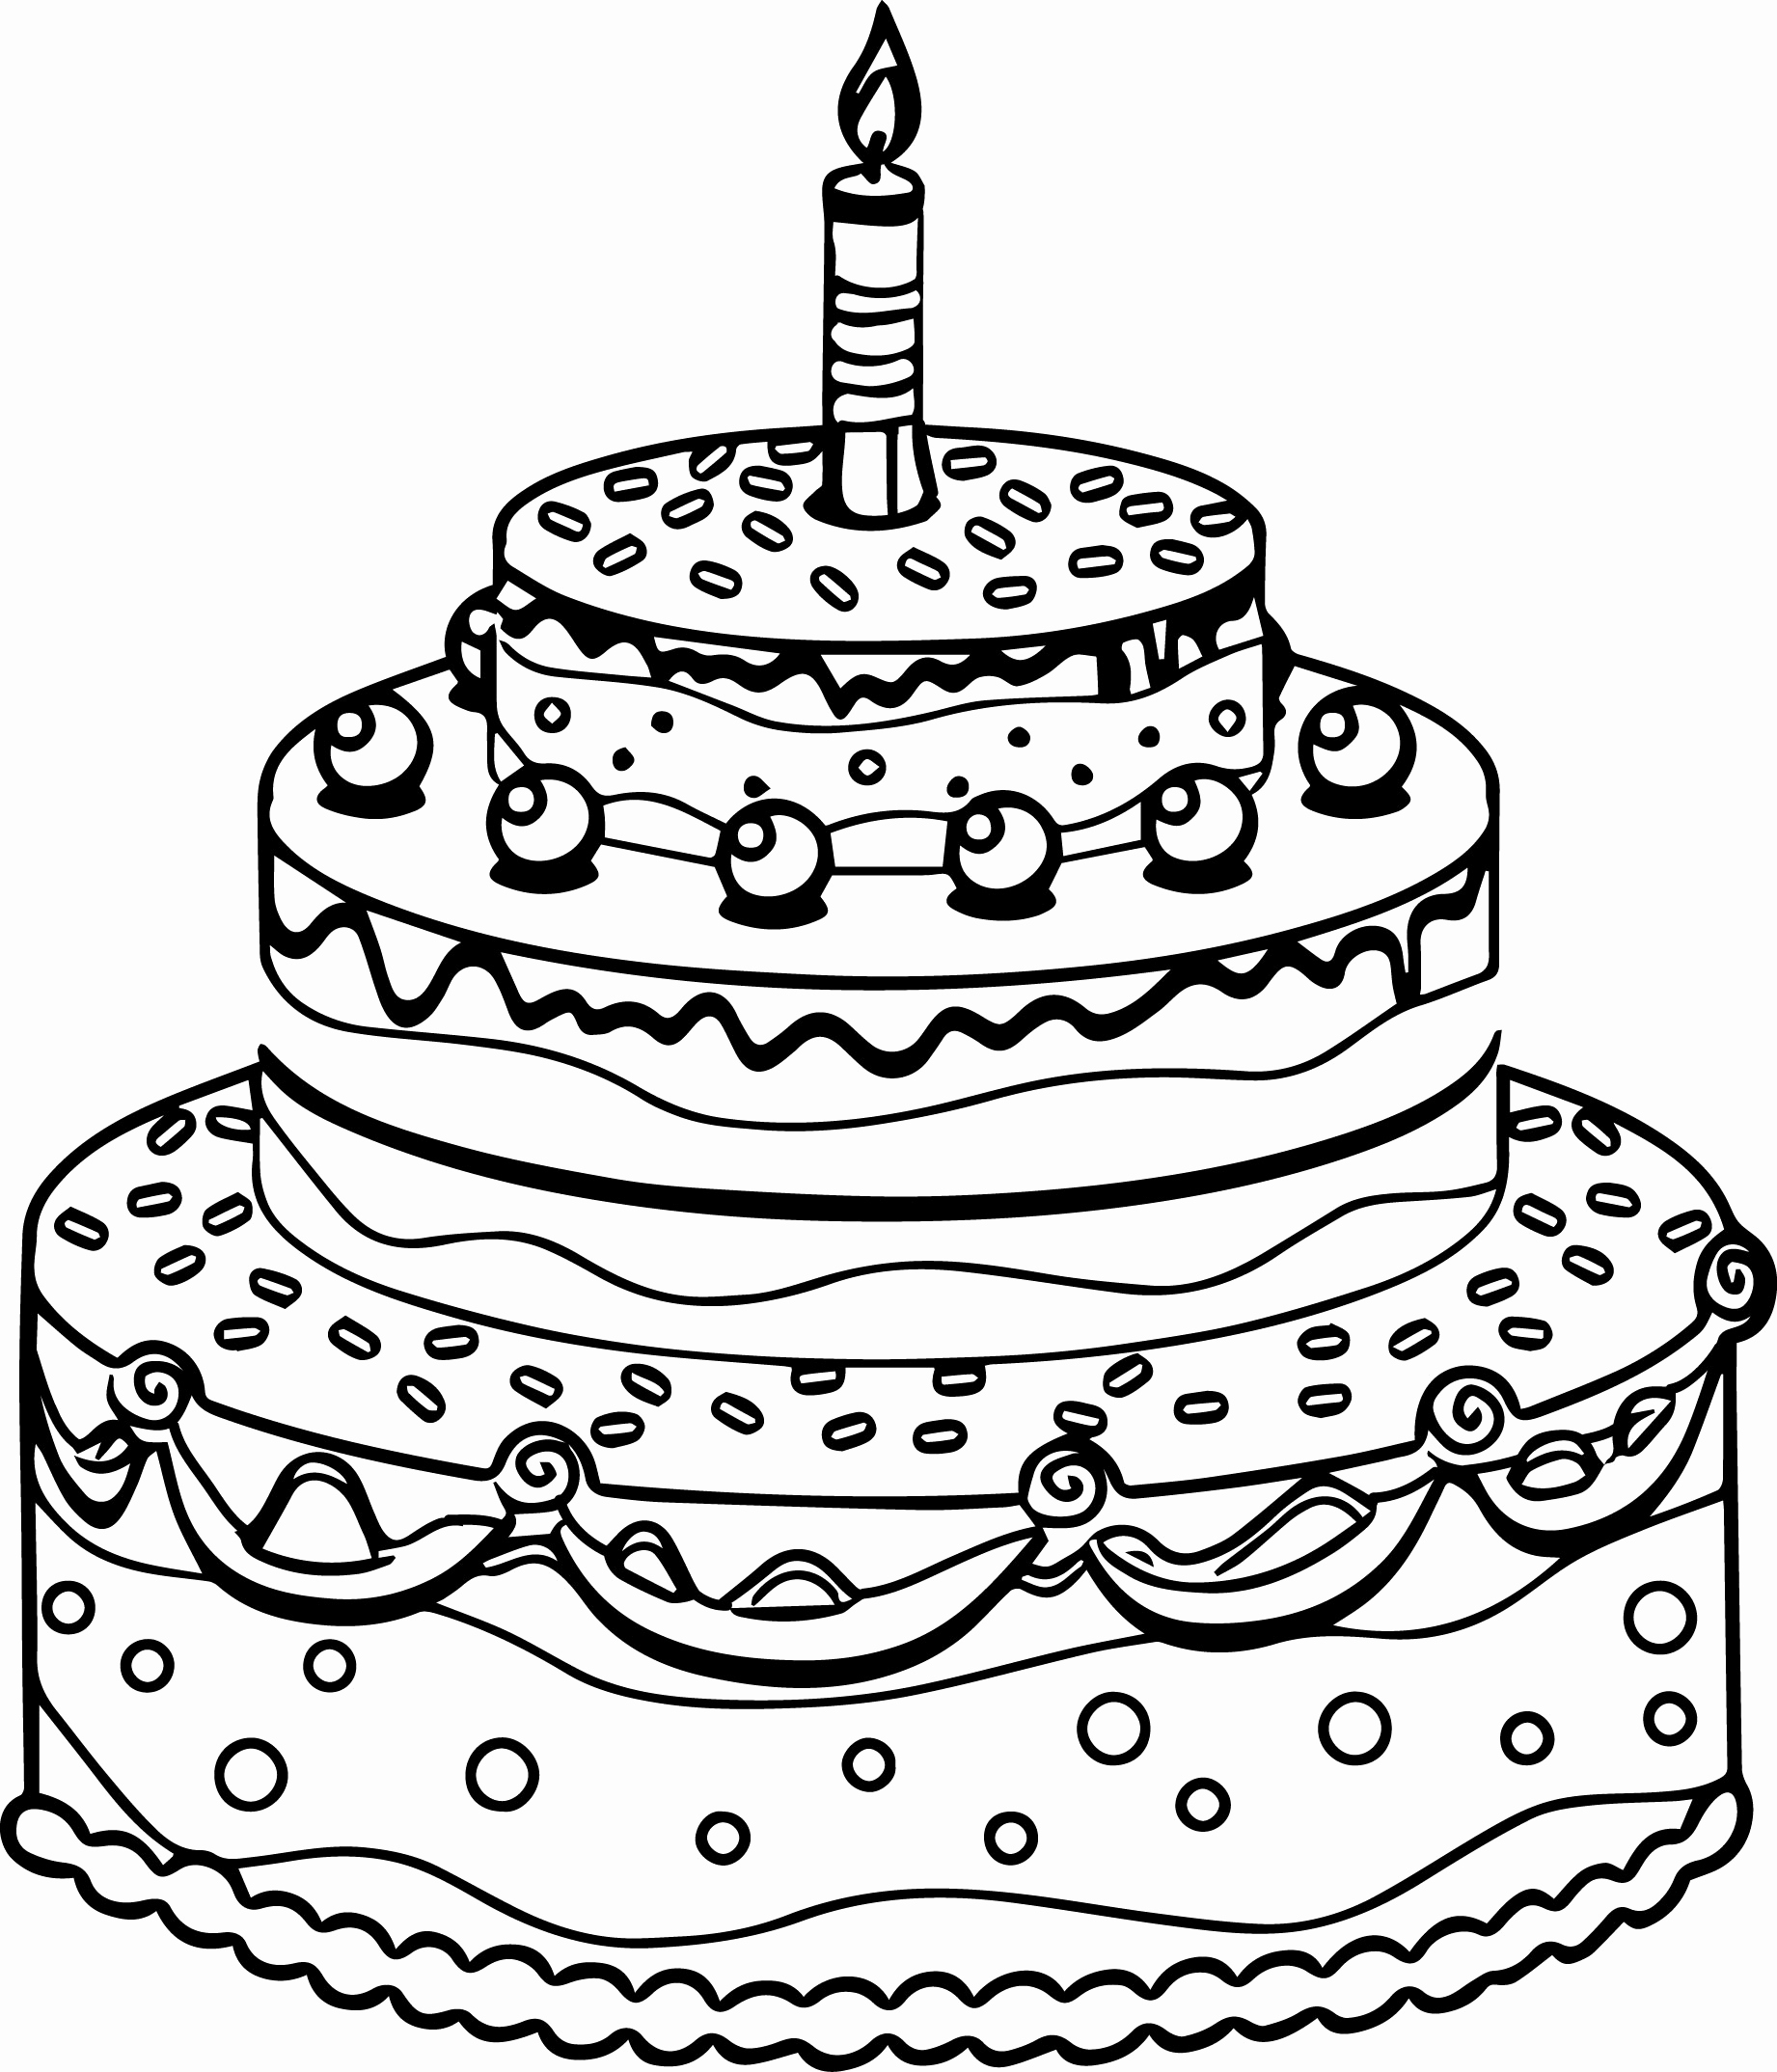 cake coloring pages to print free printable birthday cake coloring pages for kids pages coloring to cake print